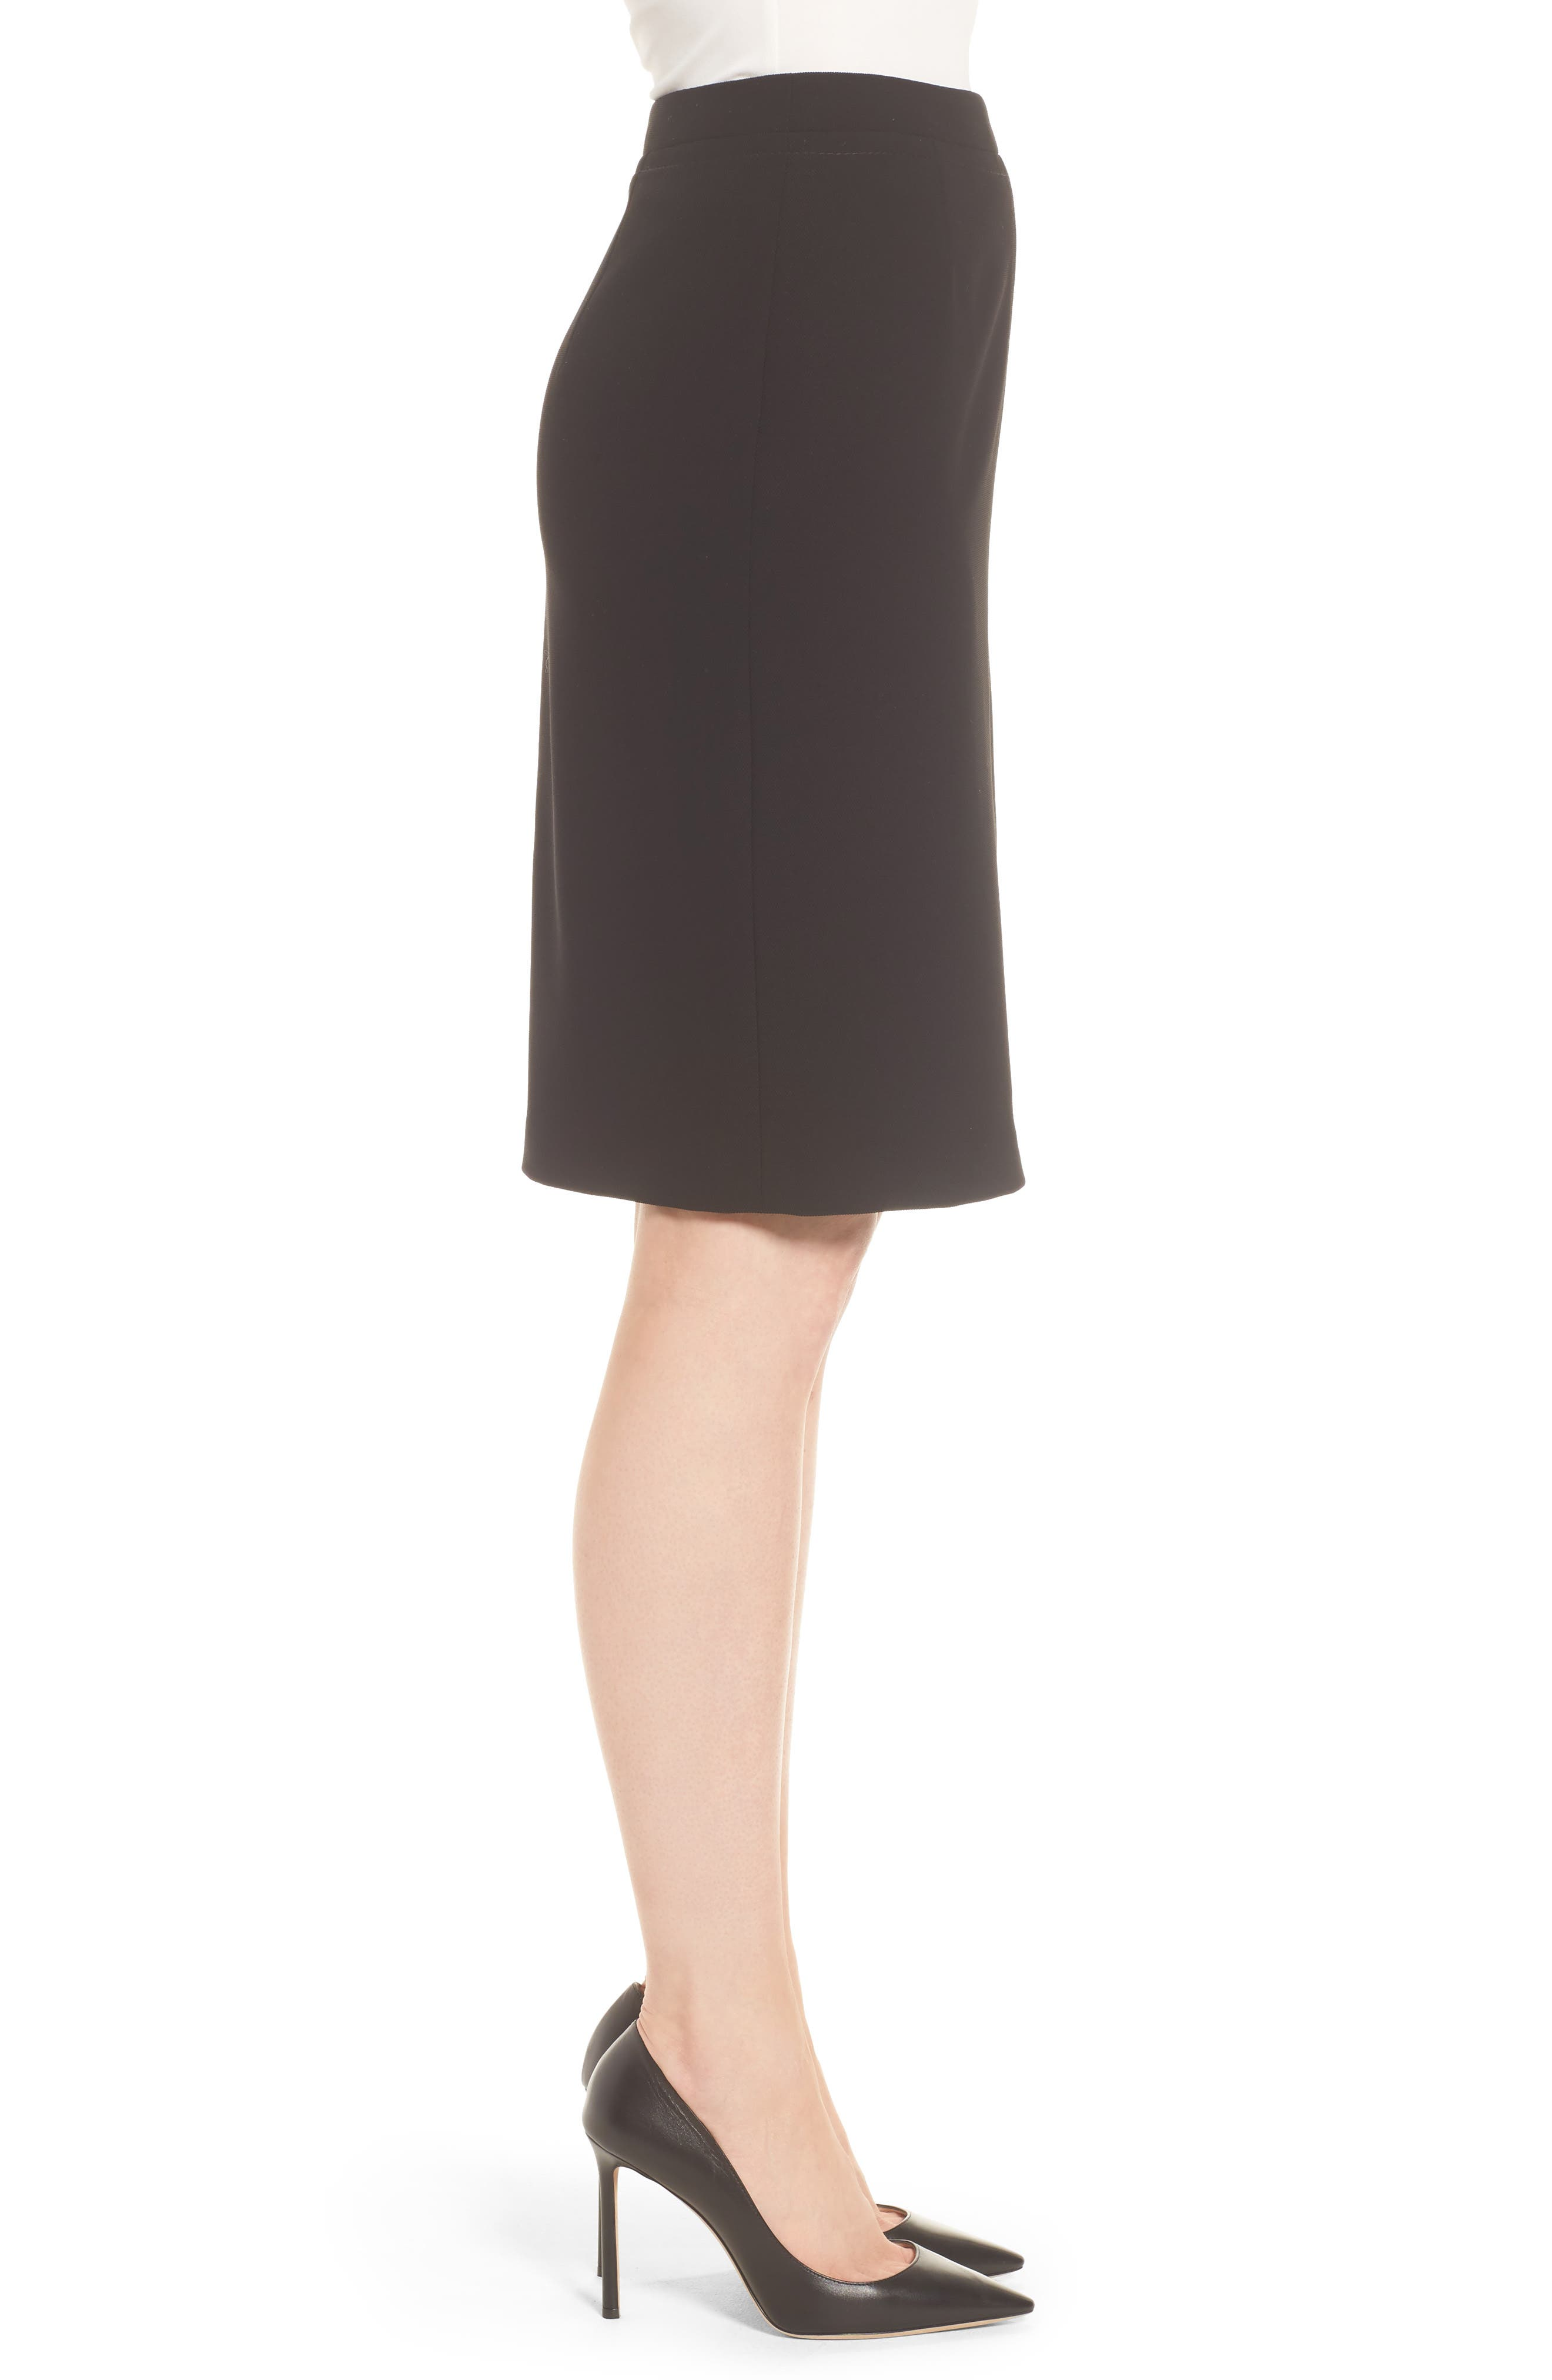 Vuriona Pencil Skirt,                             Alternate thumbnail 3, color,                             Black